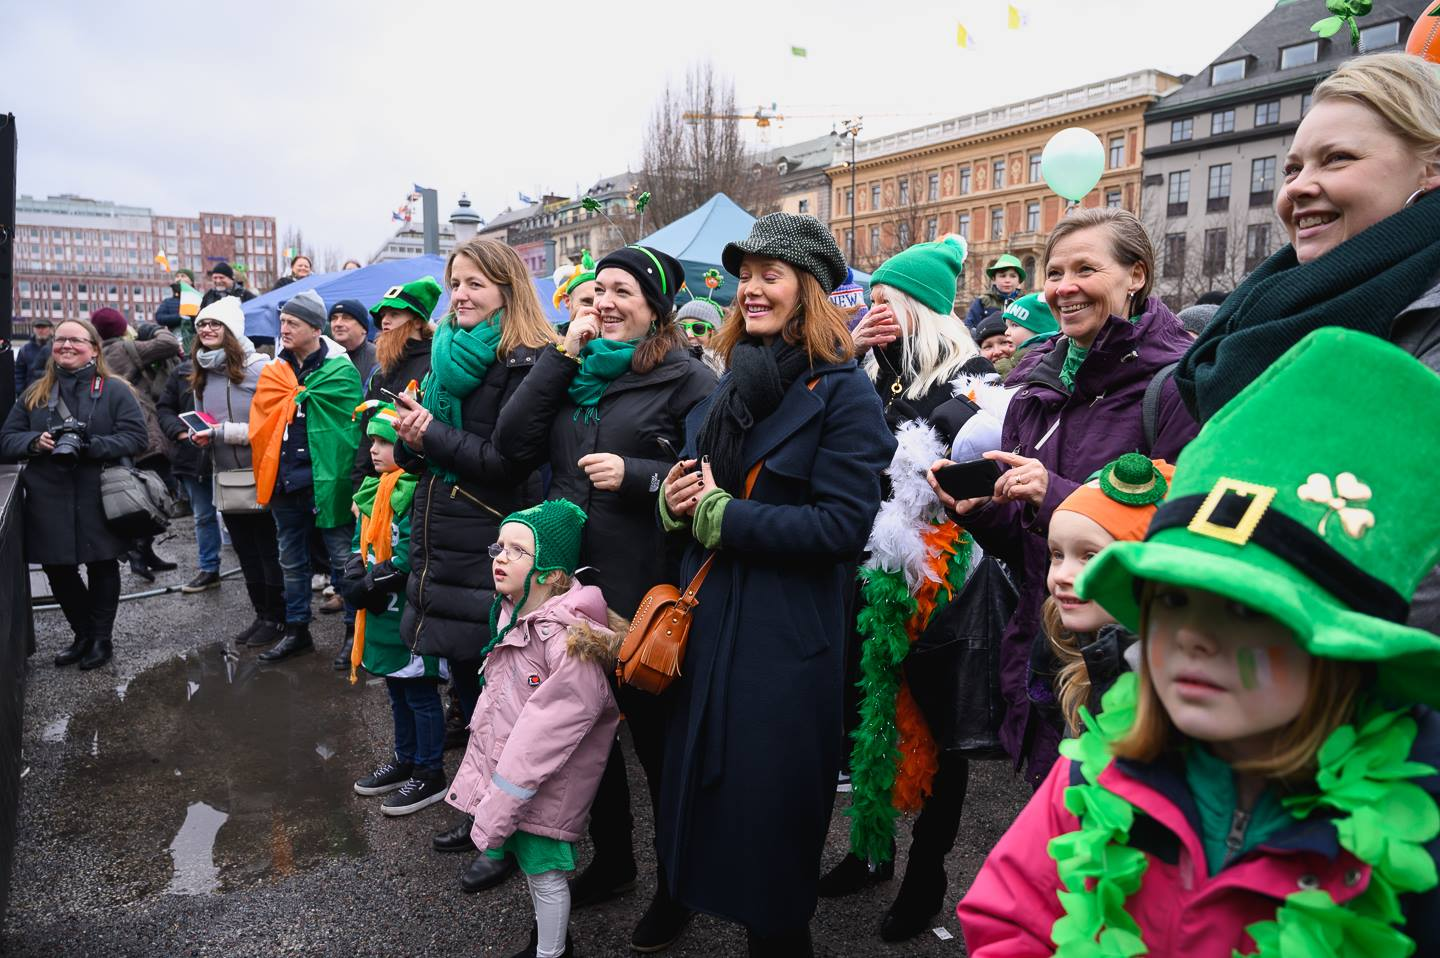 50b6f2cca The 2019 Stockholm parade – Saturday 16th March